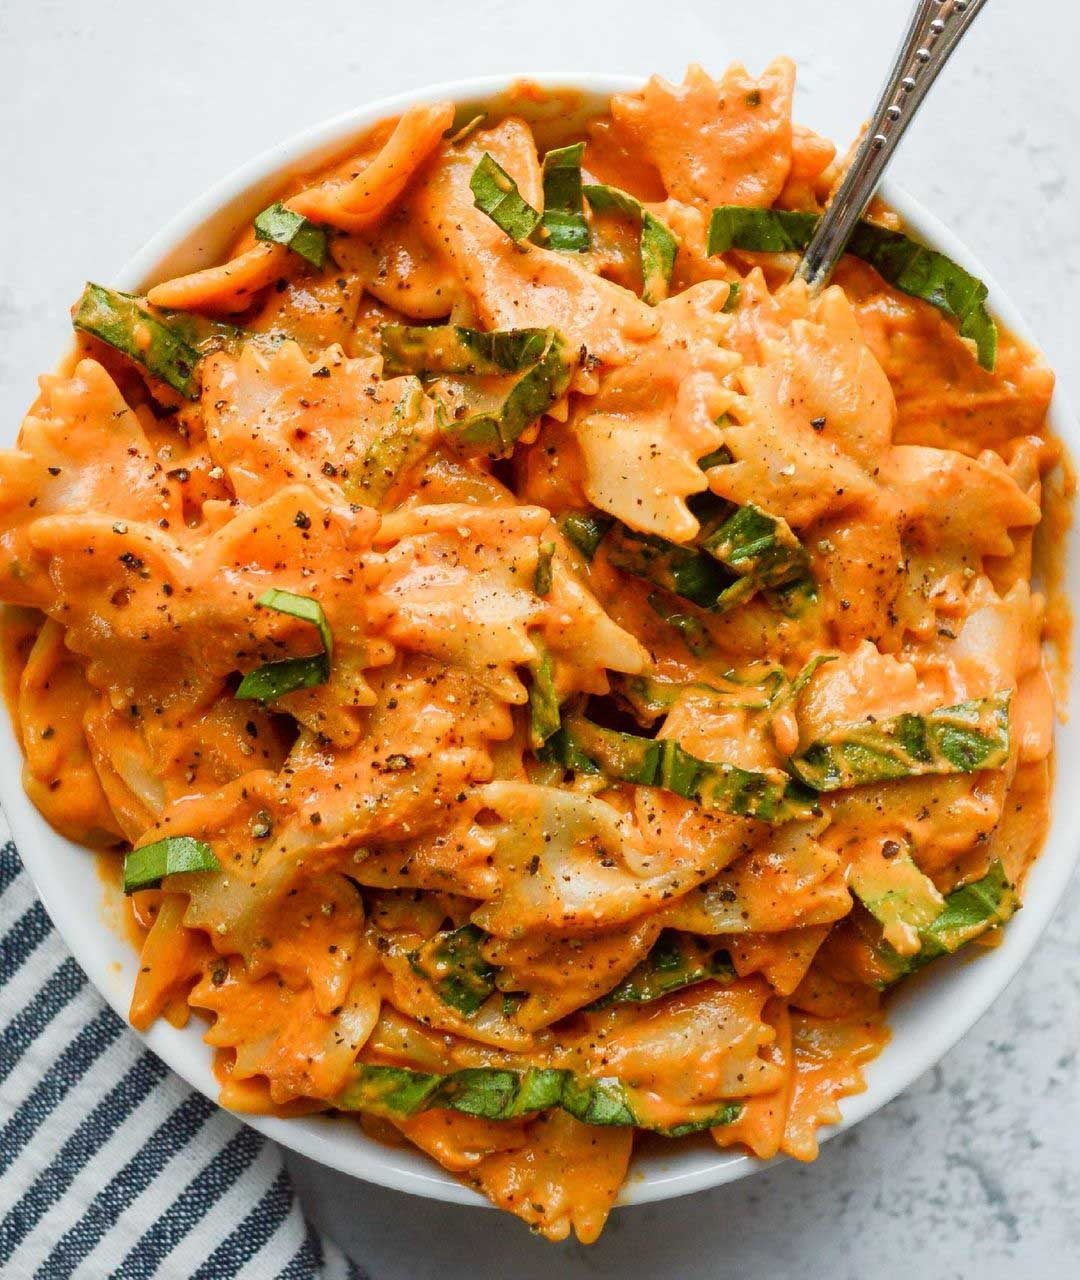 Sun-Dried Tomato and Basil Pasta recipe displayed in a bowl with spoon.